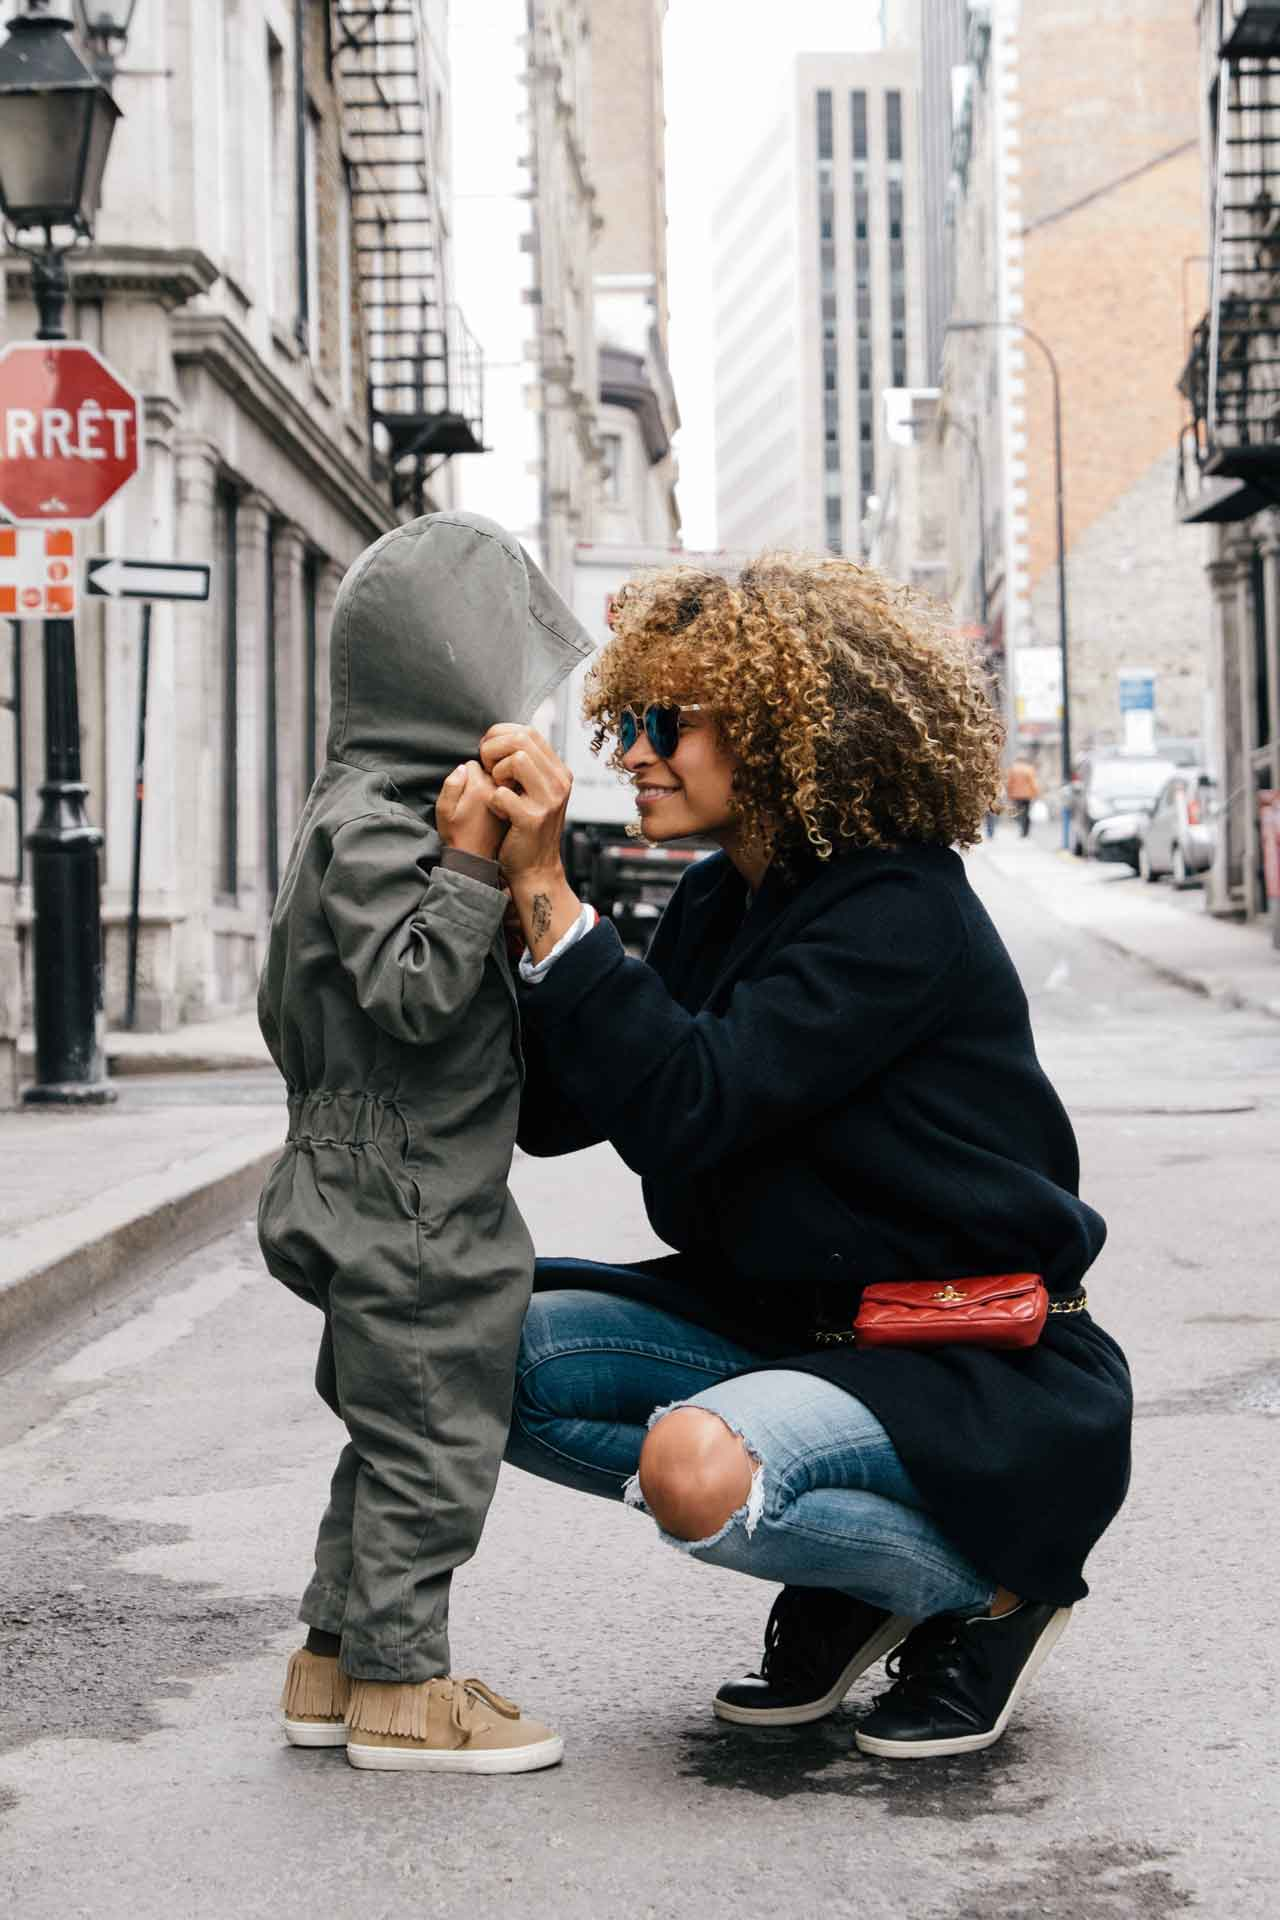 Child support & equal time sharing in Kentucky